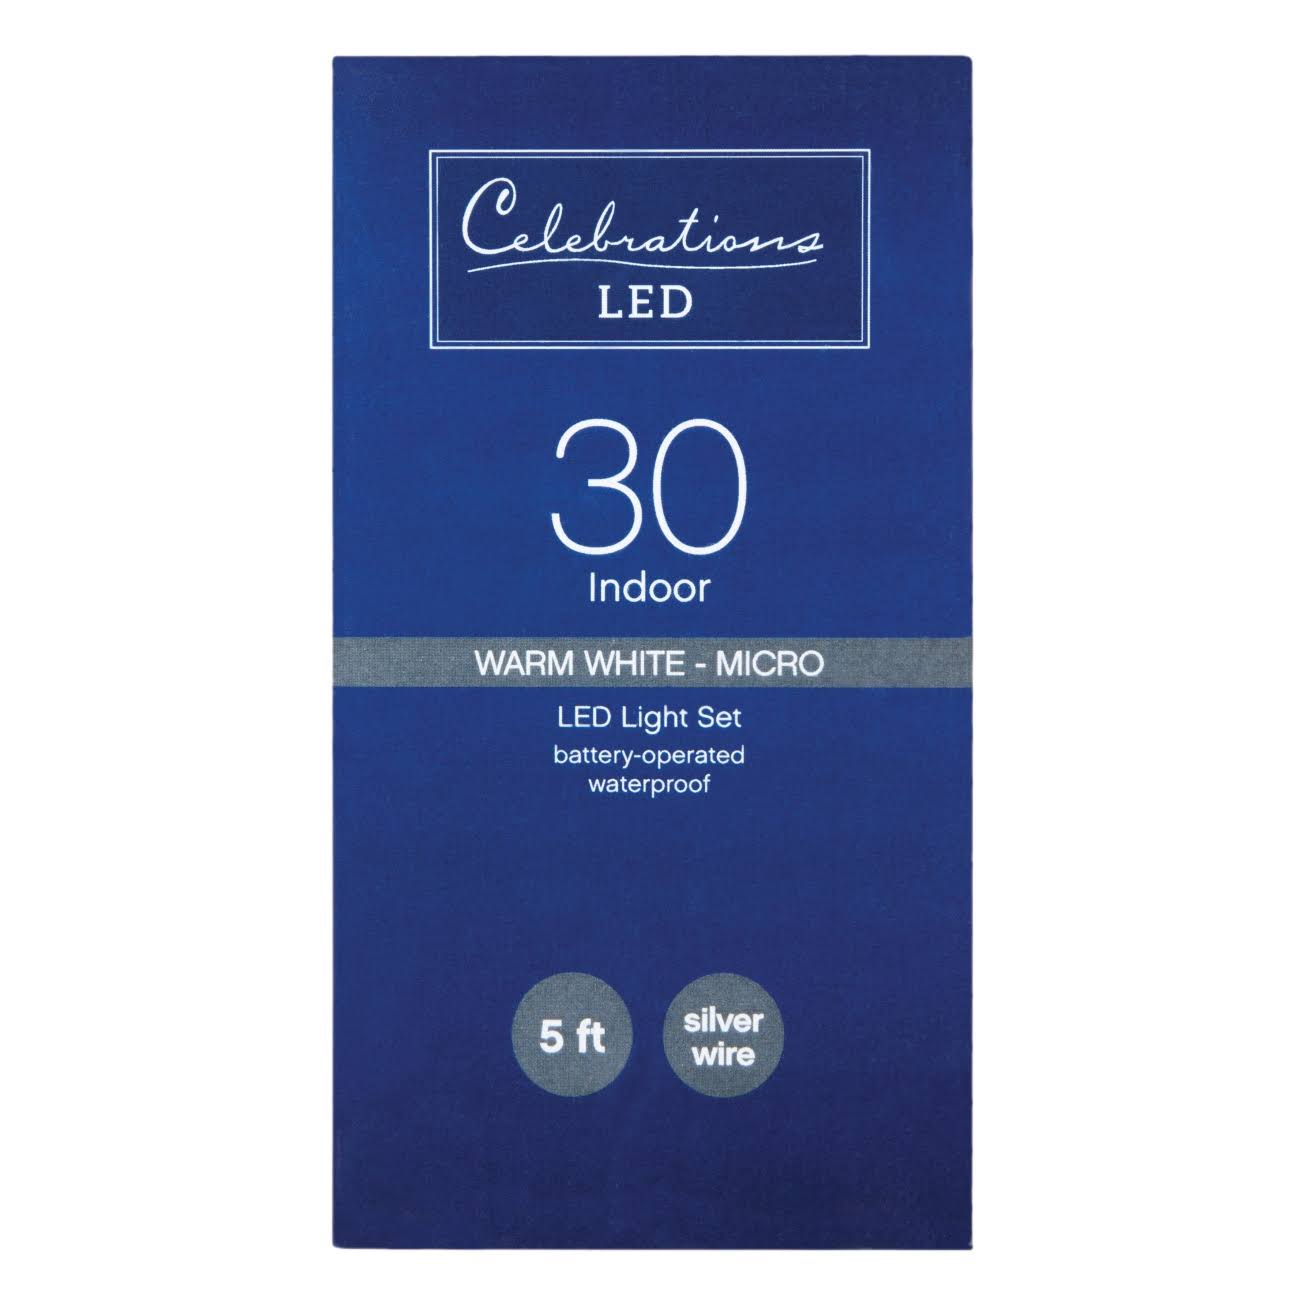 Celebrations LED Battery Operated Micro Light Set - Warm White, 5ft, 30 Lights